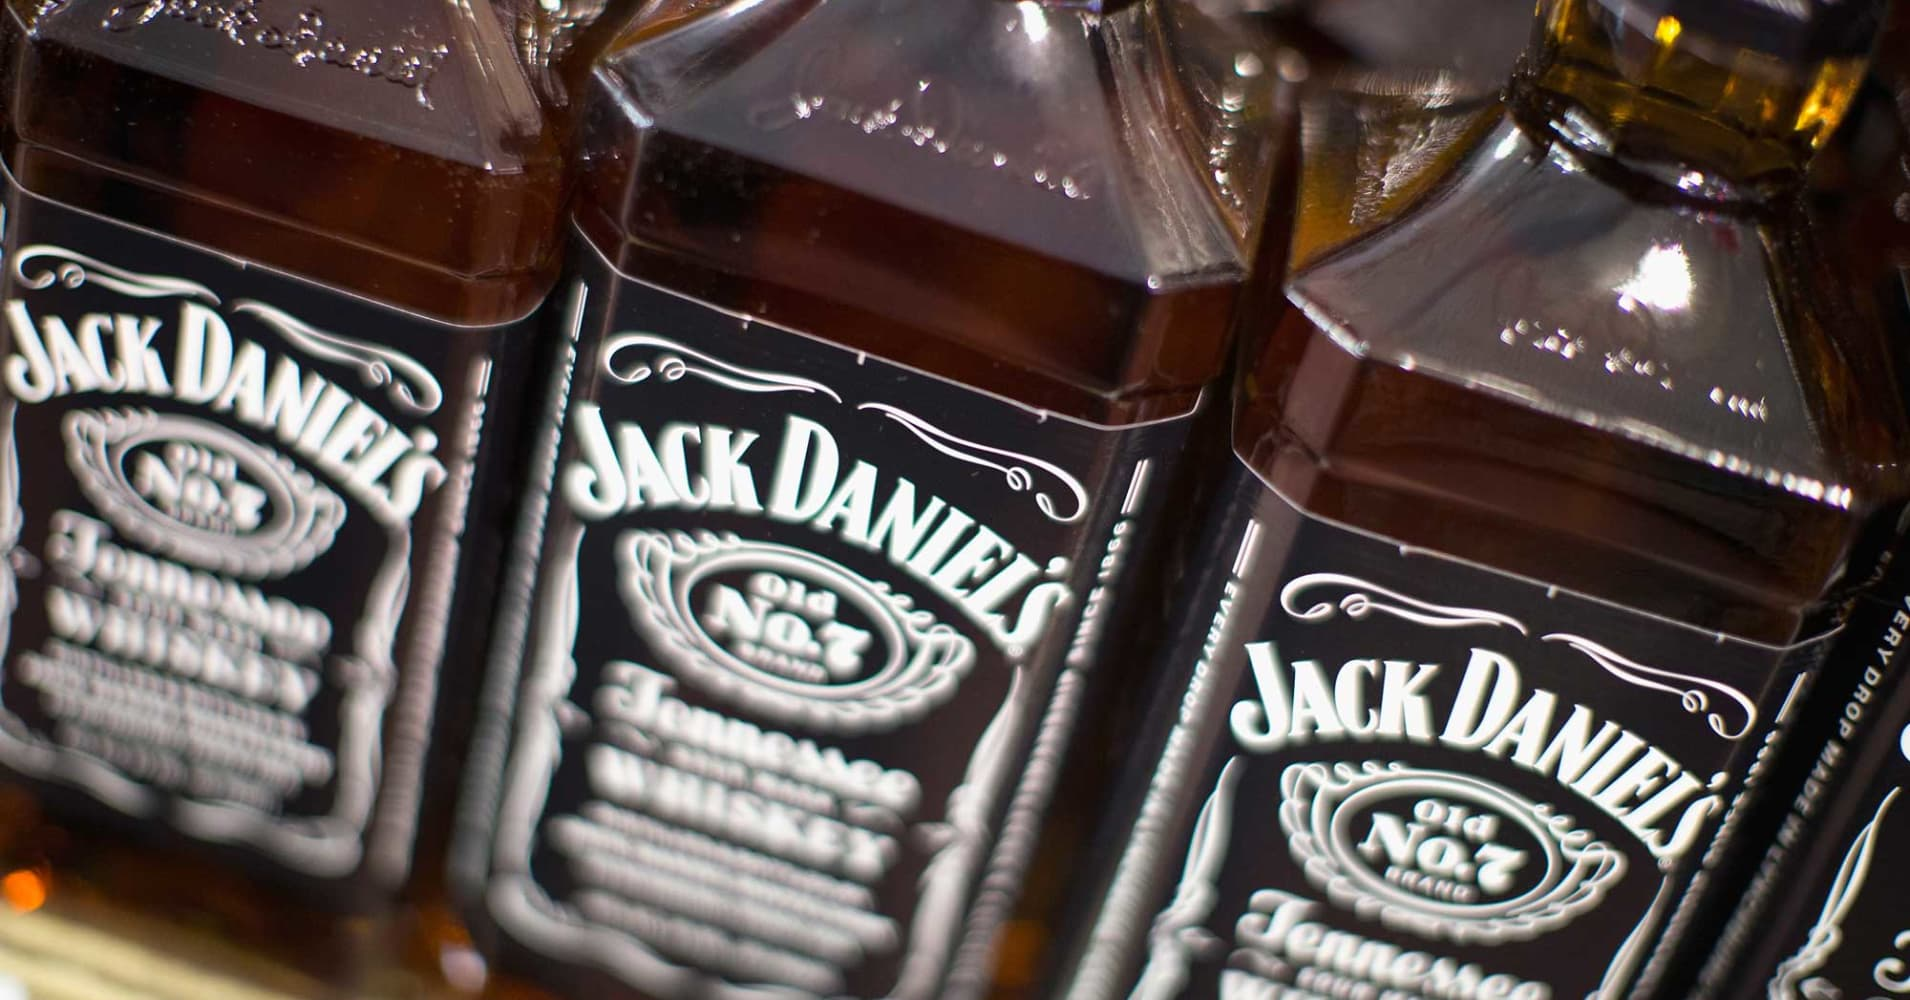 Constellation Brands made takeover approach for Jack Daniel's owner Brown-Forman